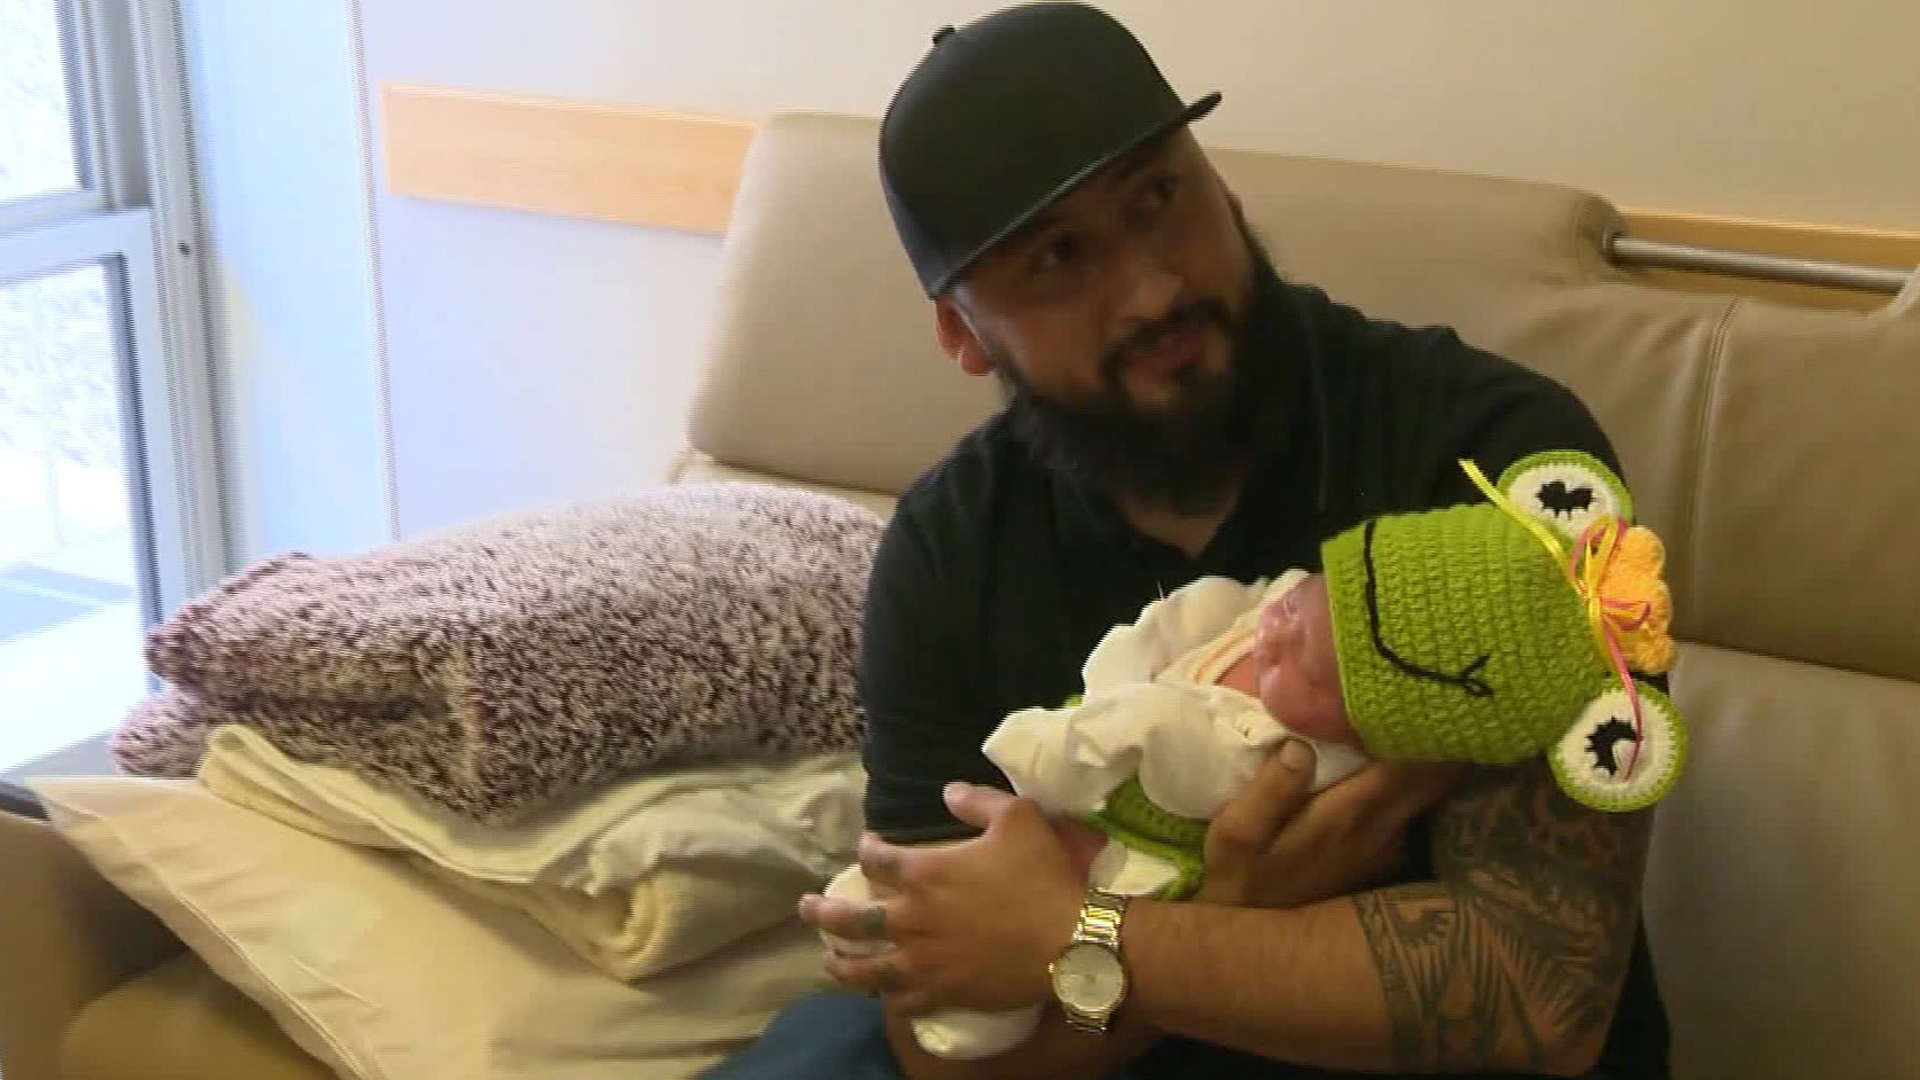 Baby Camila was born at a Sacramento-area hospital on Feb. 29, giving her the same birthday as her father Ivan Peñaloza. (KCRA)